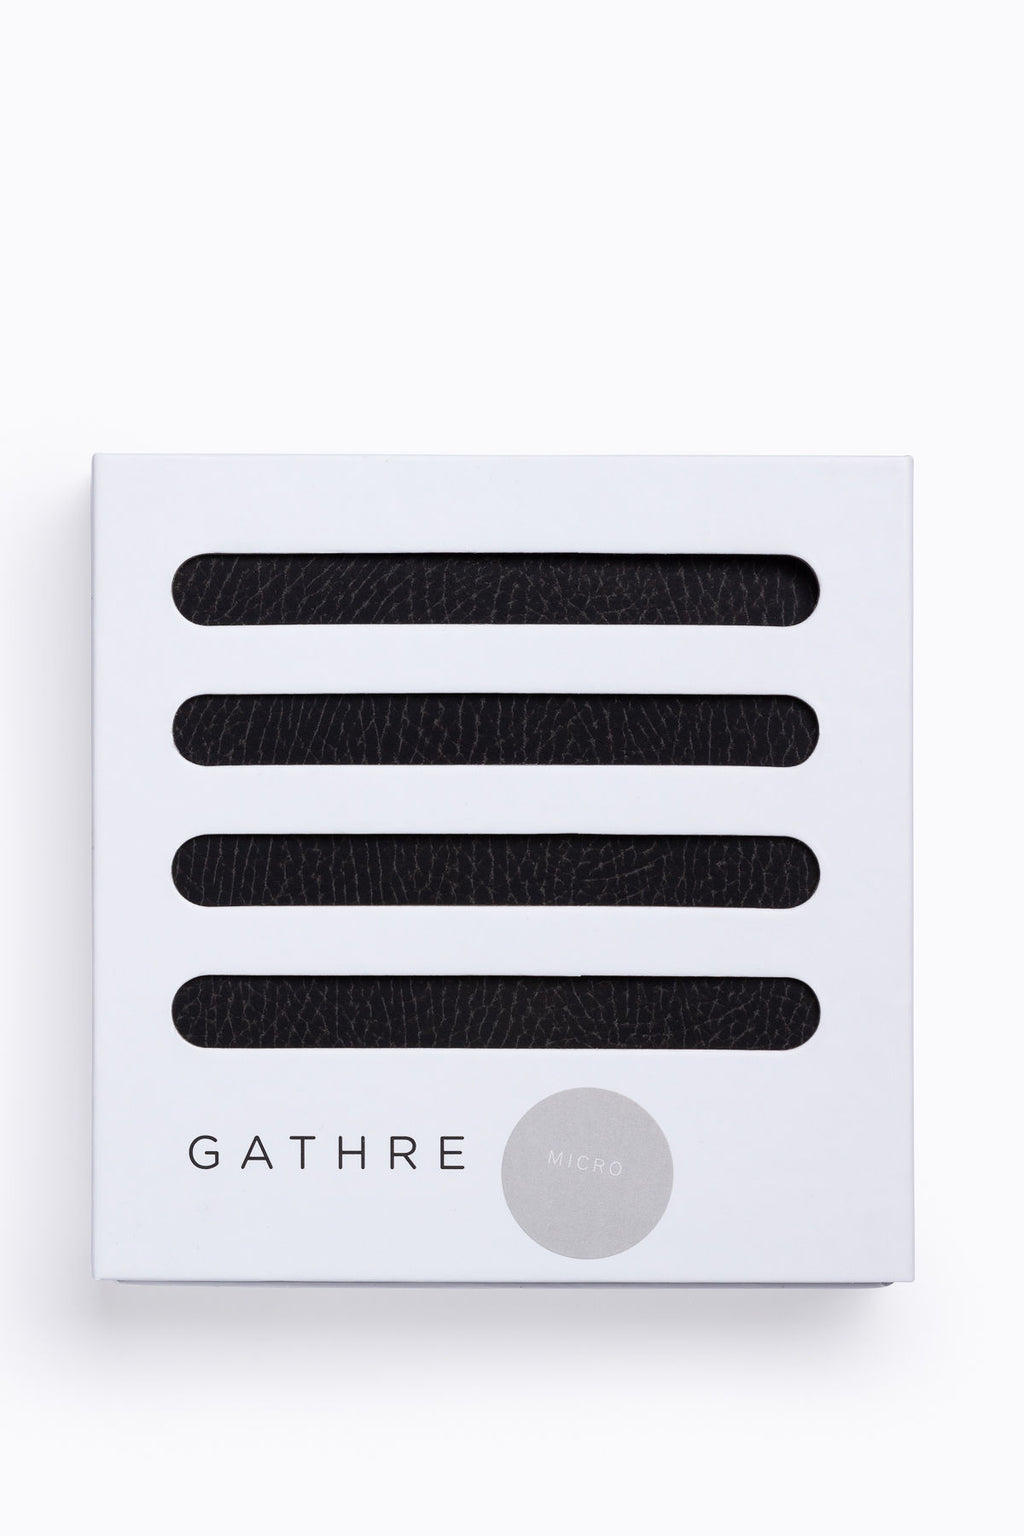 HOME: Gathre Micro Mat in Raven